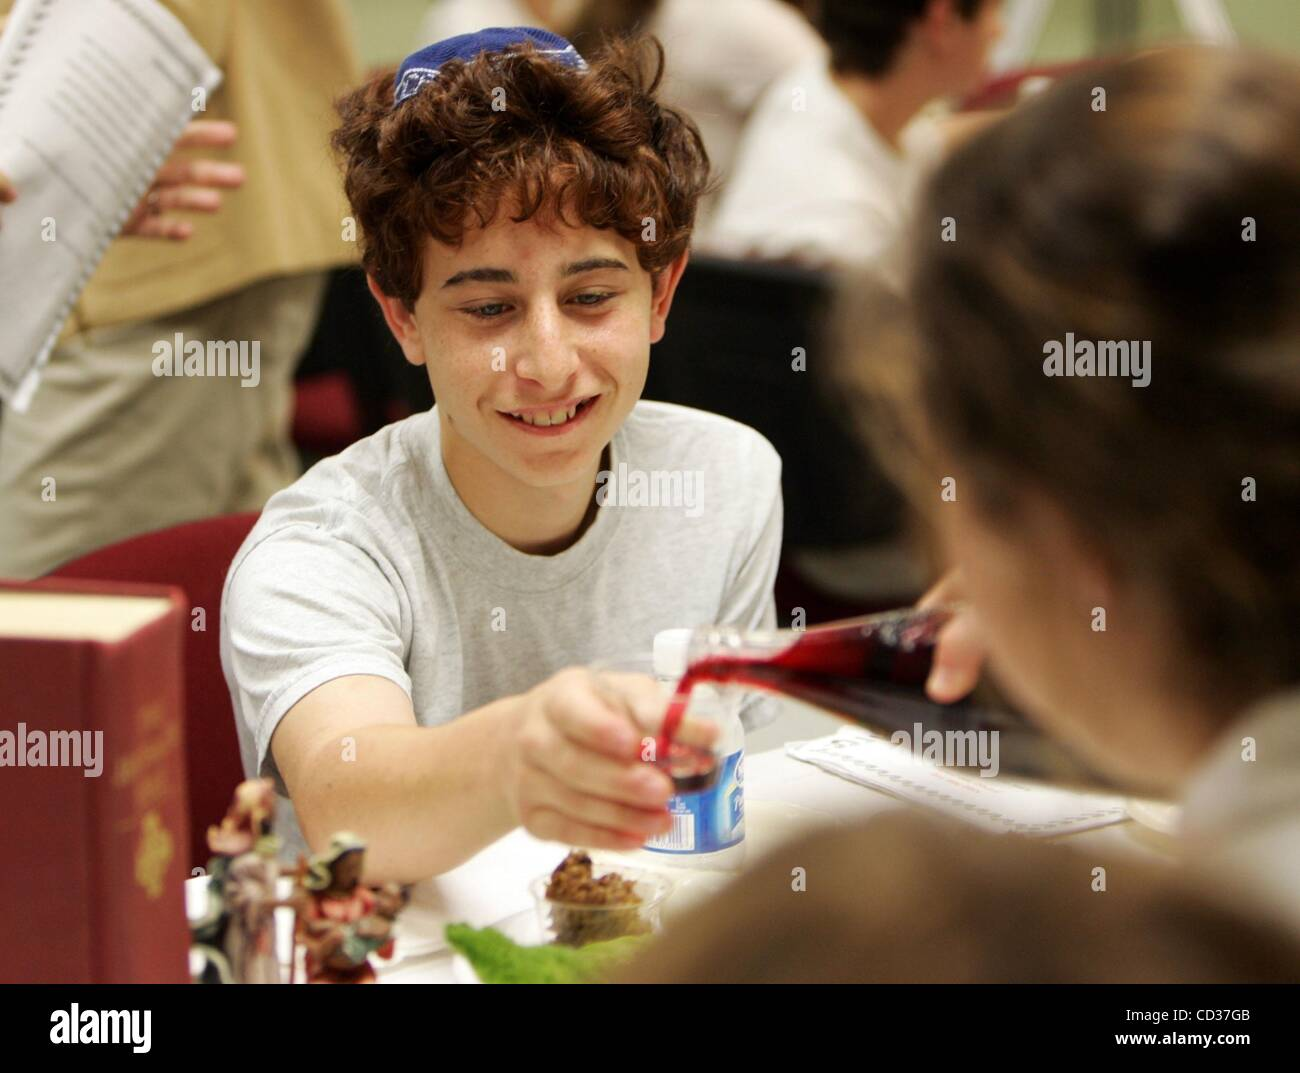 Apr 17, 2008 - West Palm Beach, Florida, USA - ALBERT KRANZ, 13, accepts some wine (grape juice) during a Passover - Stock Image